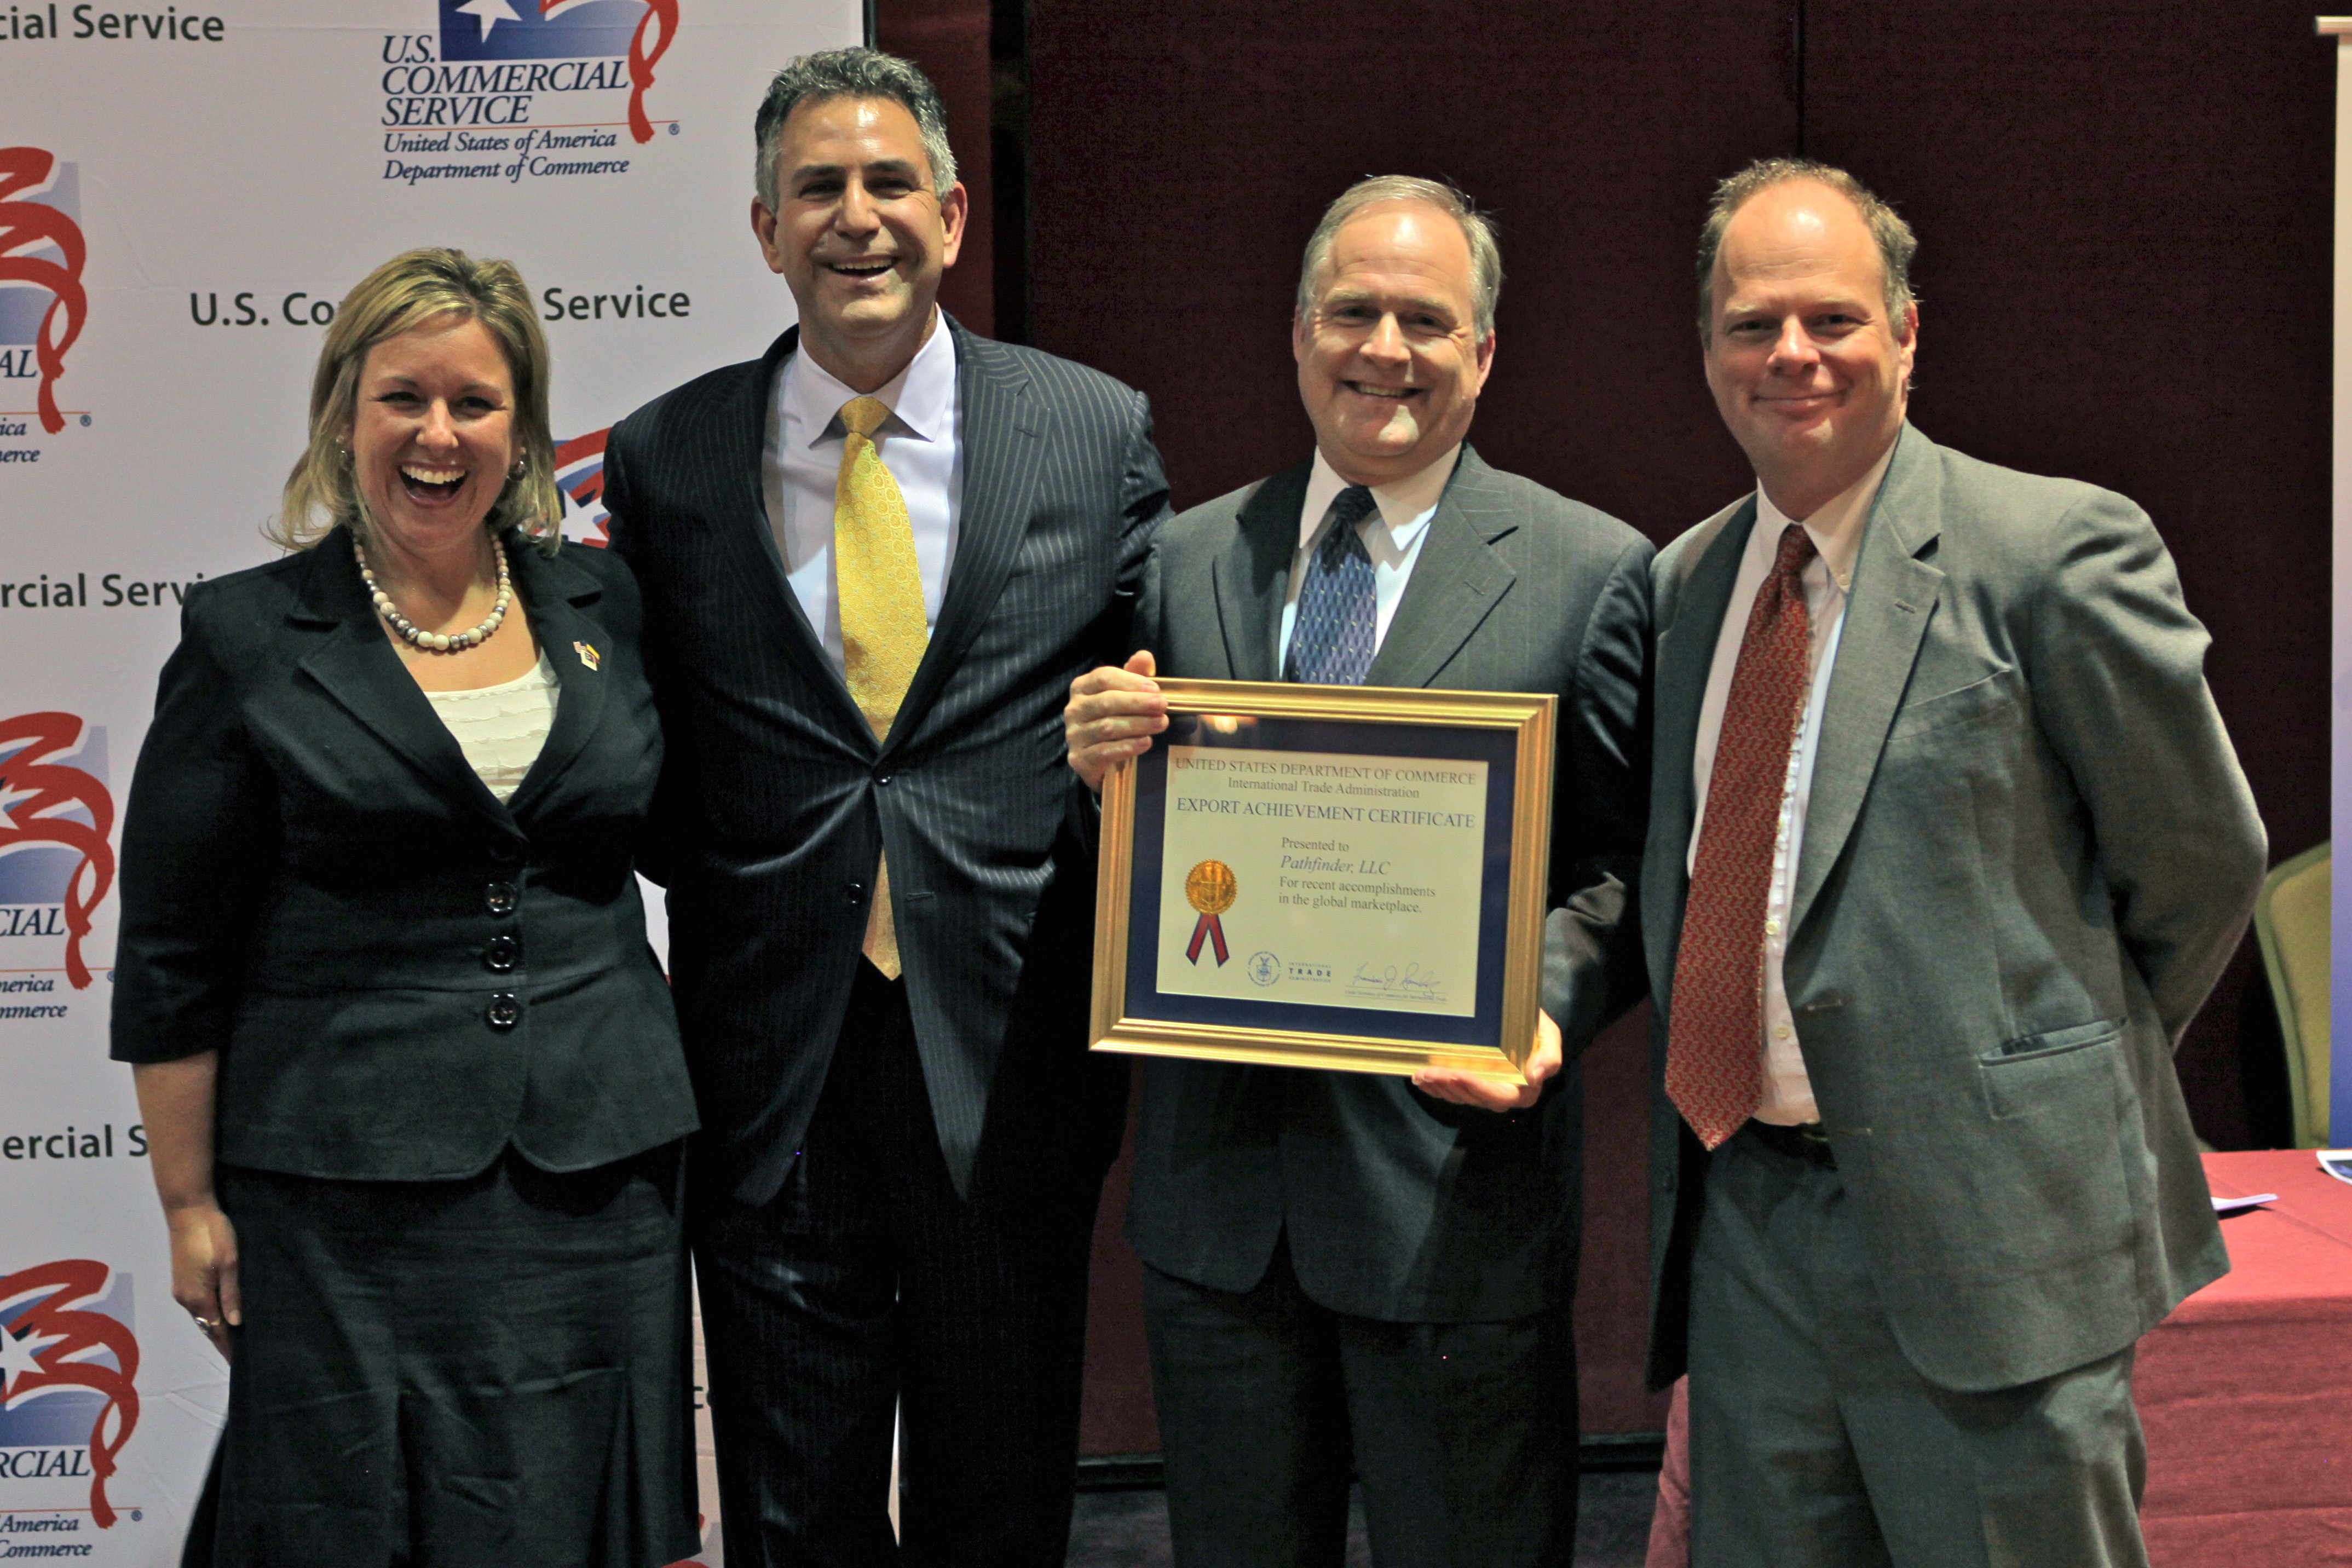 Pathfinder Receives EAC Award